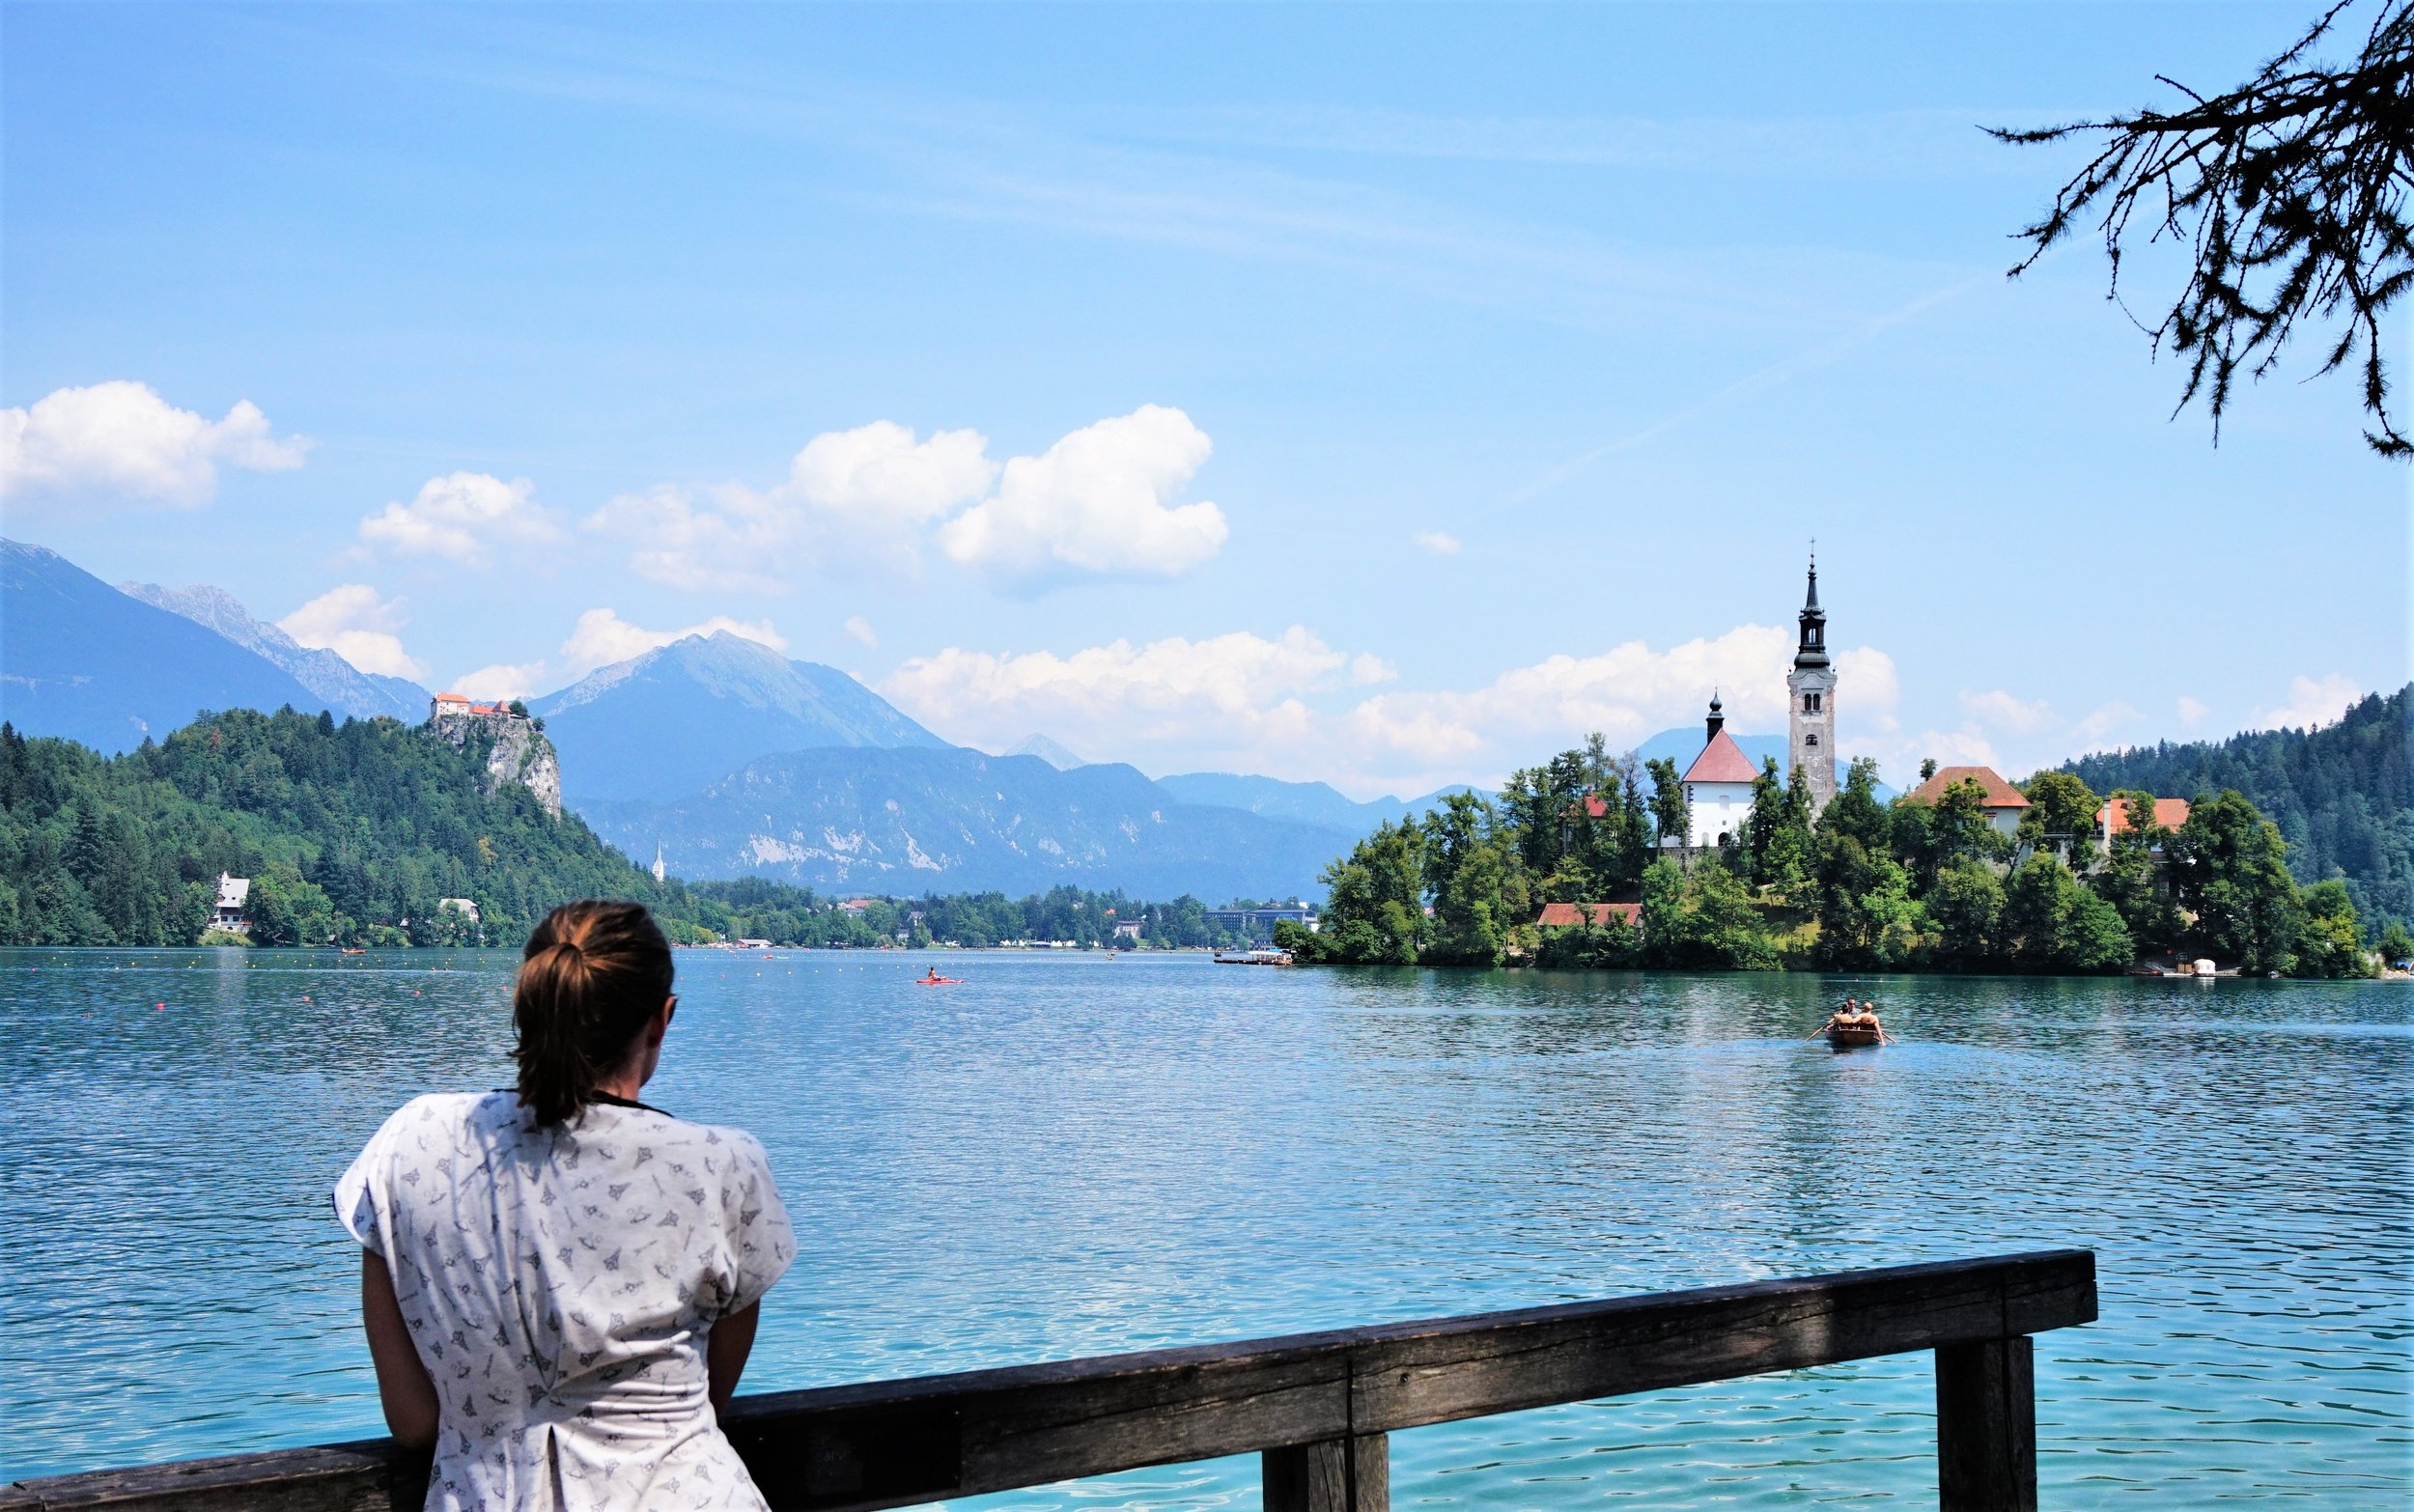 Lake Bled, Slovenia should definitely be part of your Balkan Road trip itinerary